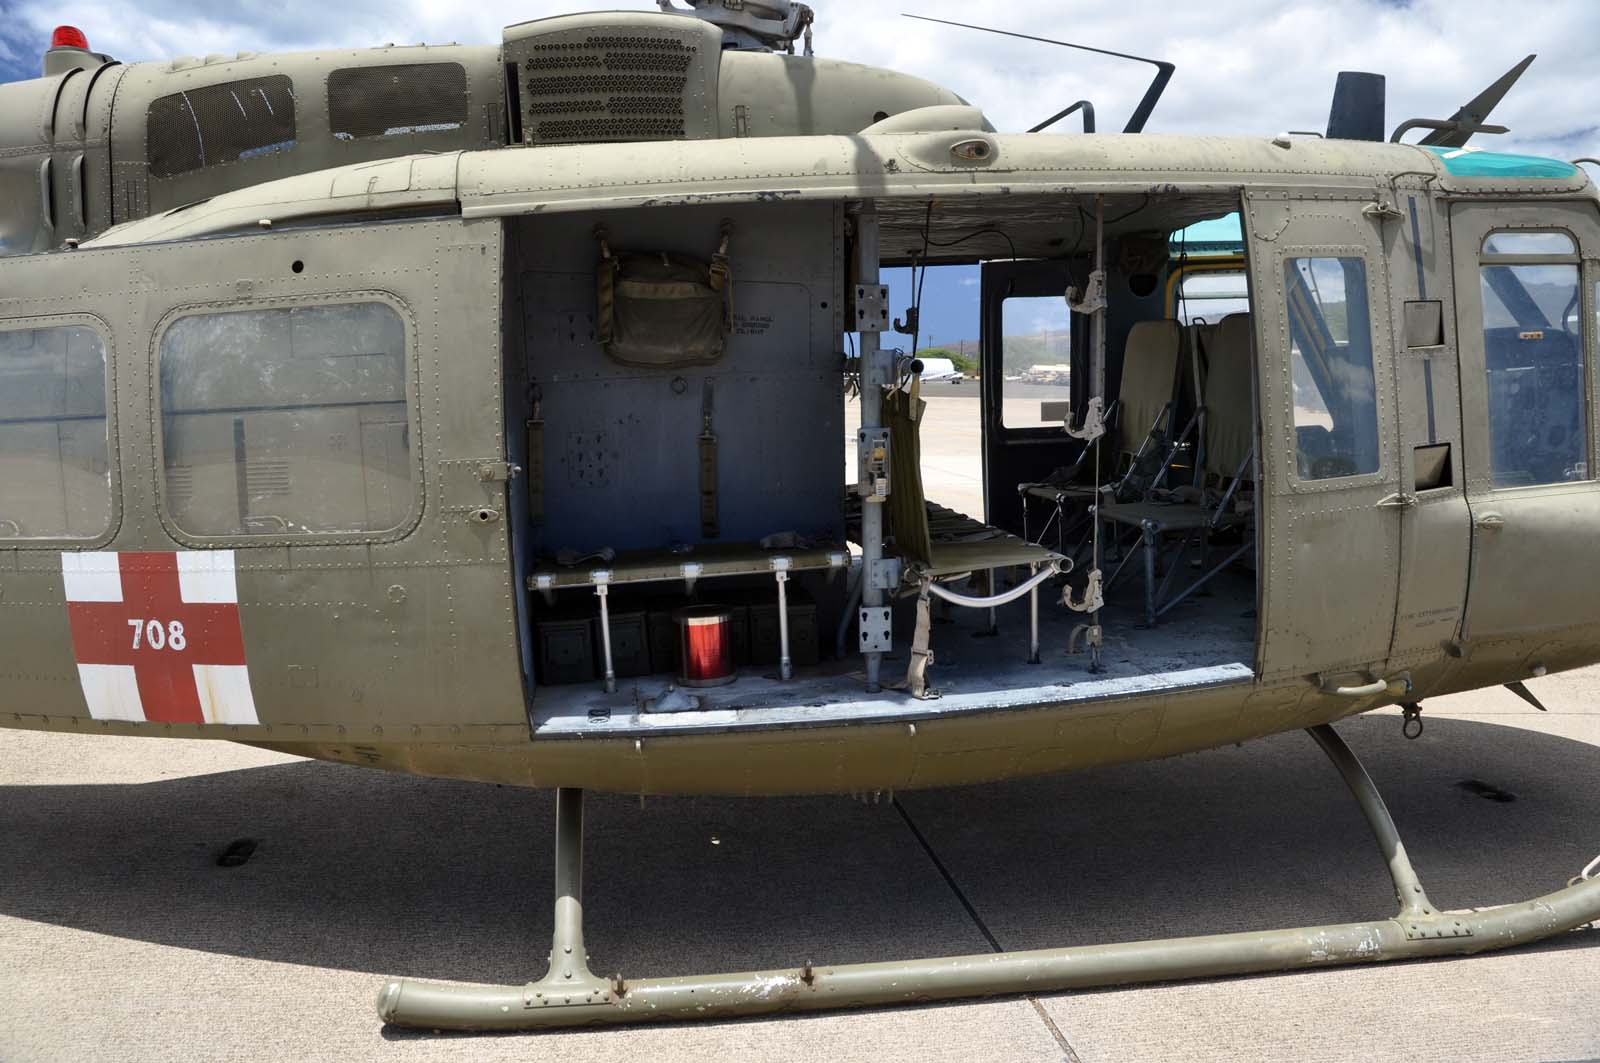 TOADMANS TANK PICTURES UH 1H HUEY